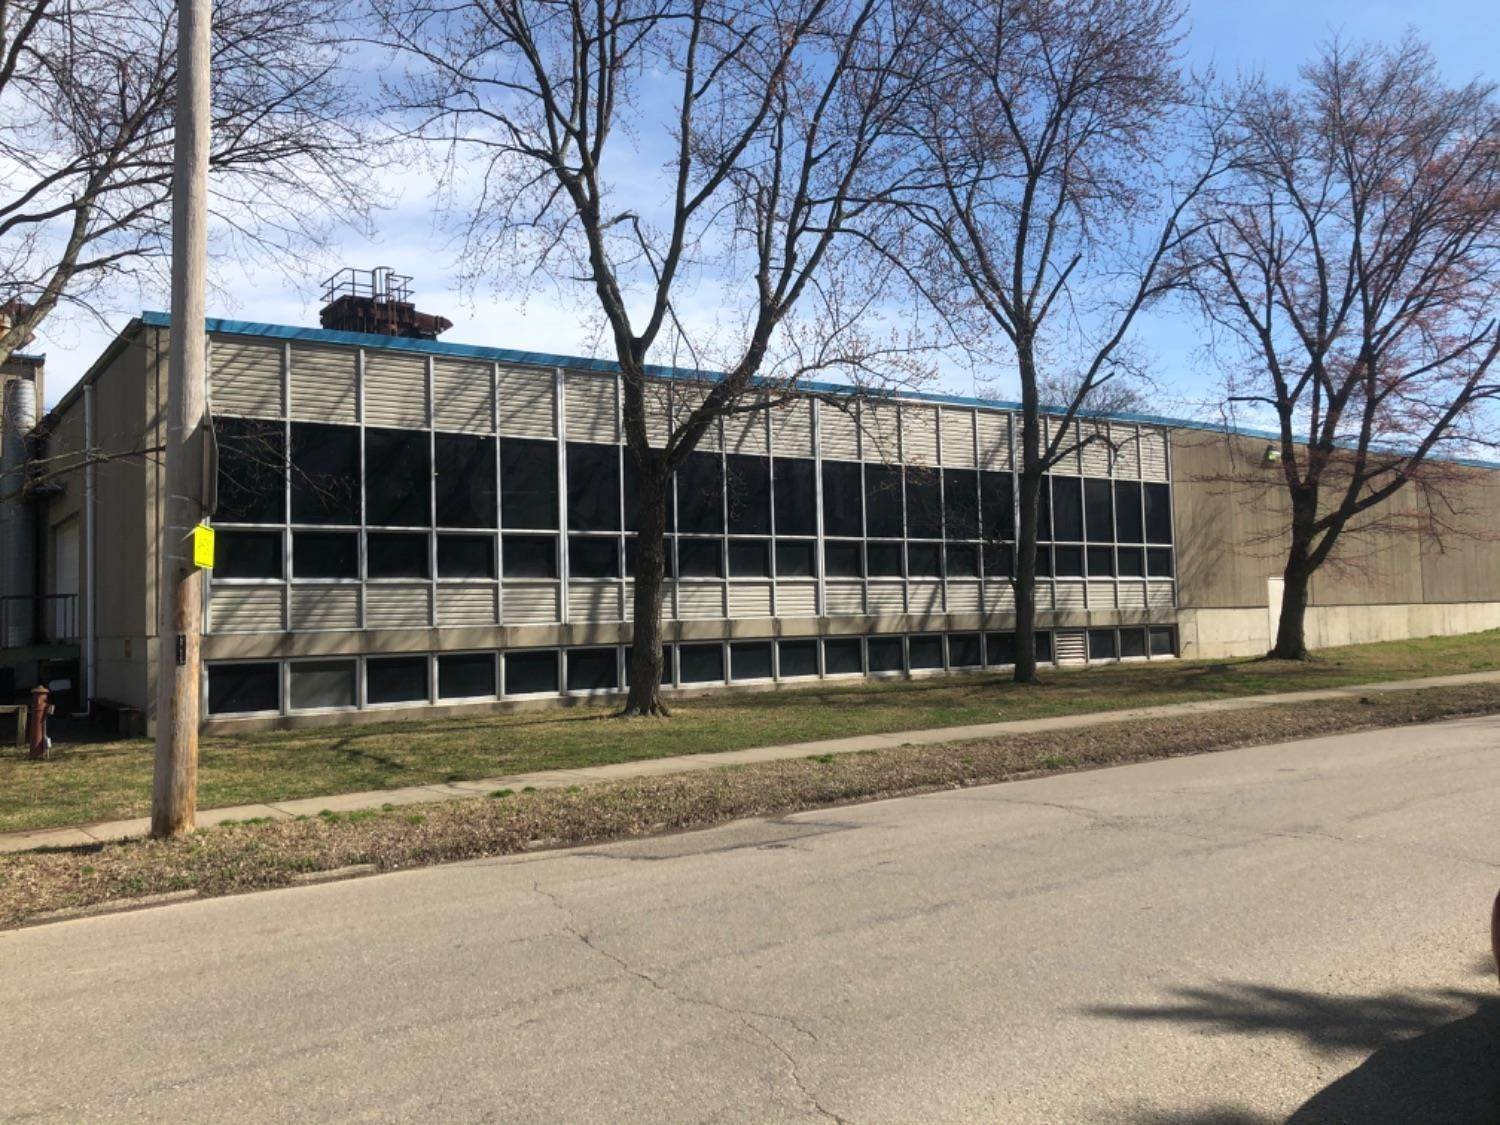 Commercial for Sale at 1200 Dayton Street Hamilton, Ohio 45011 United States